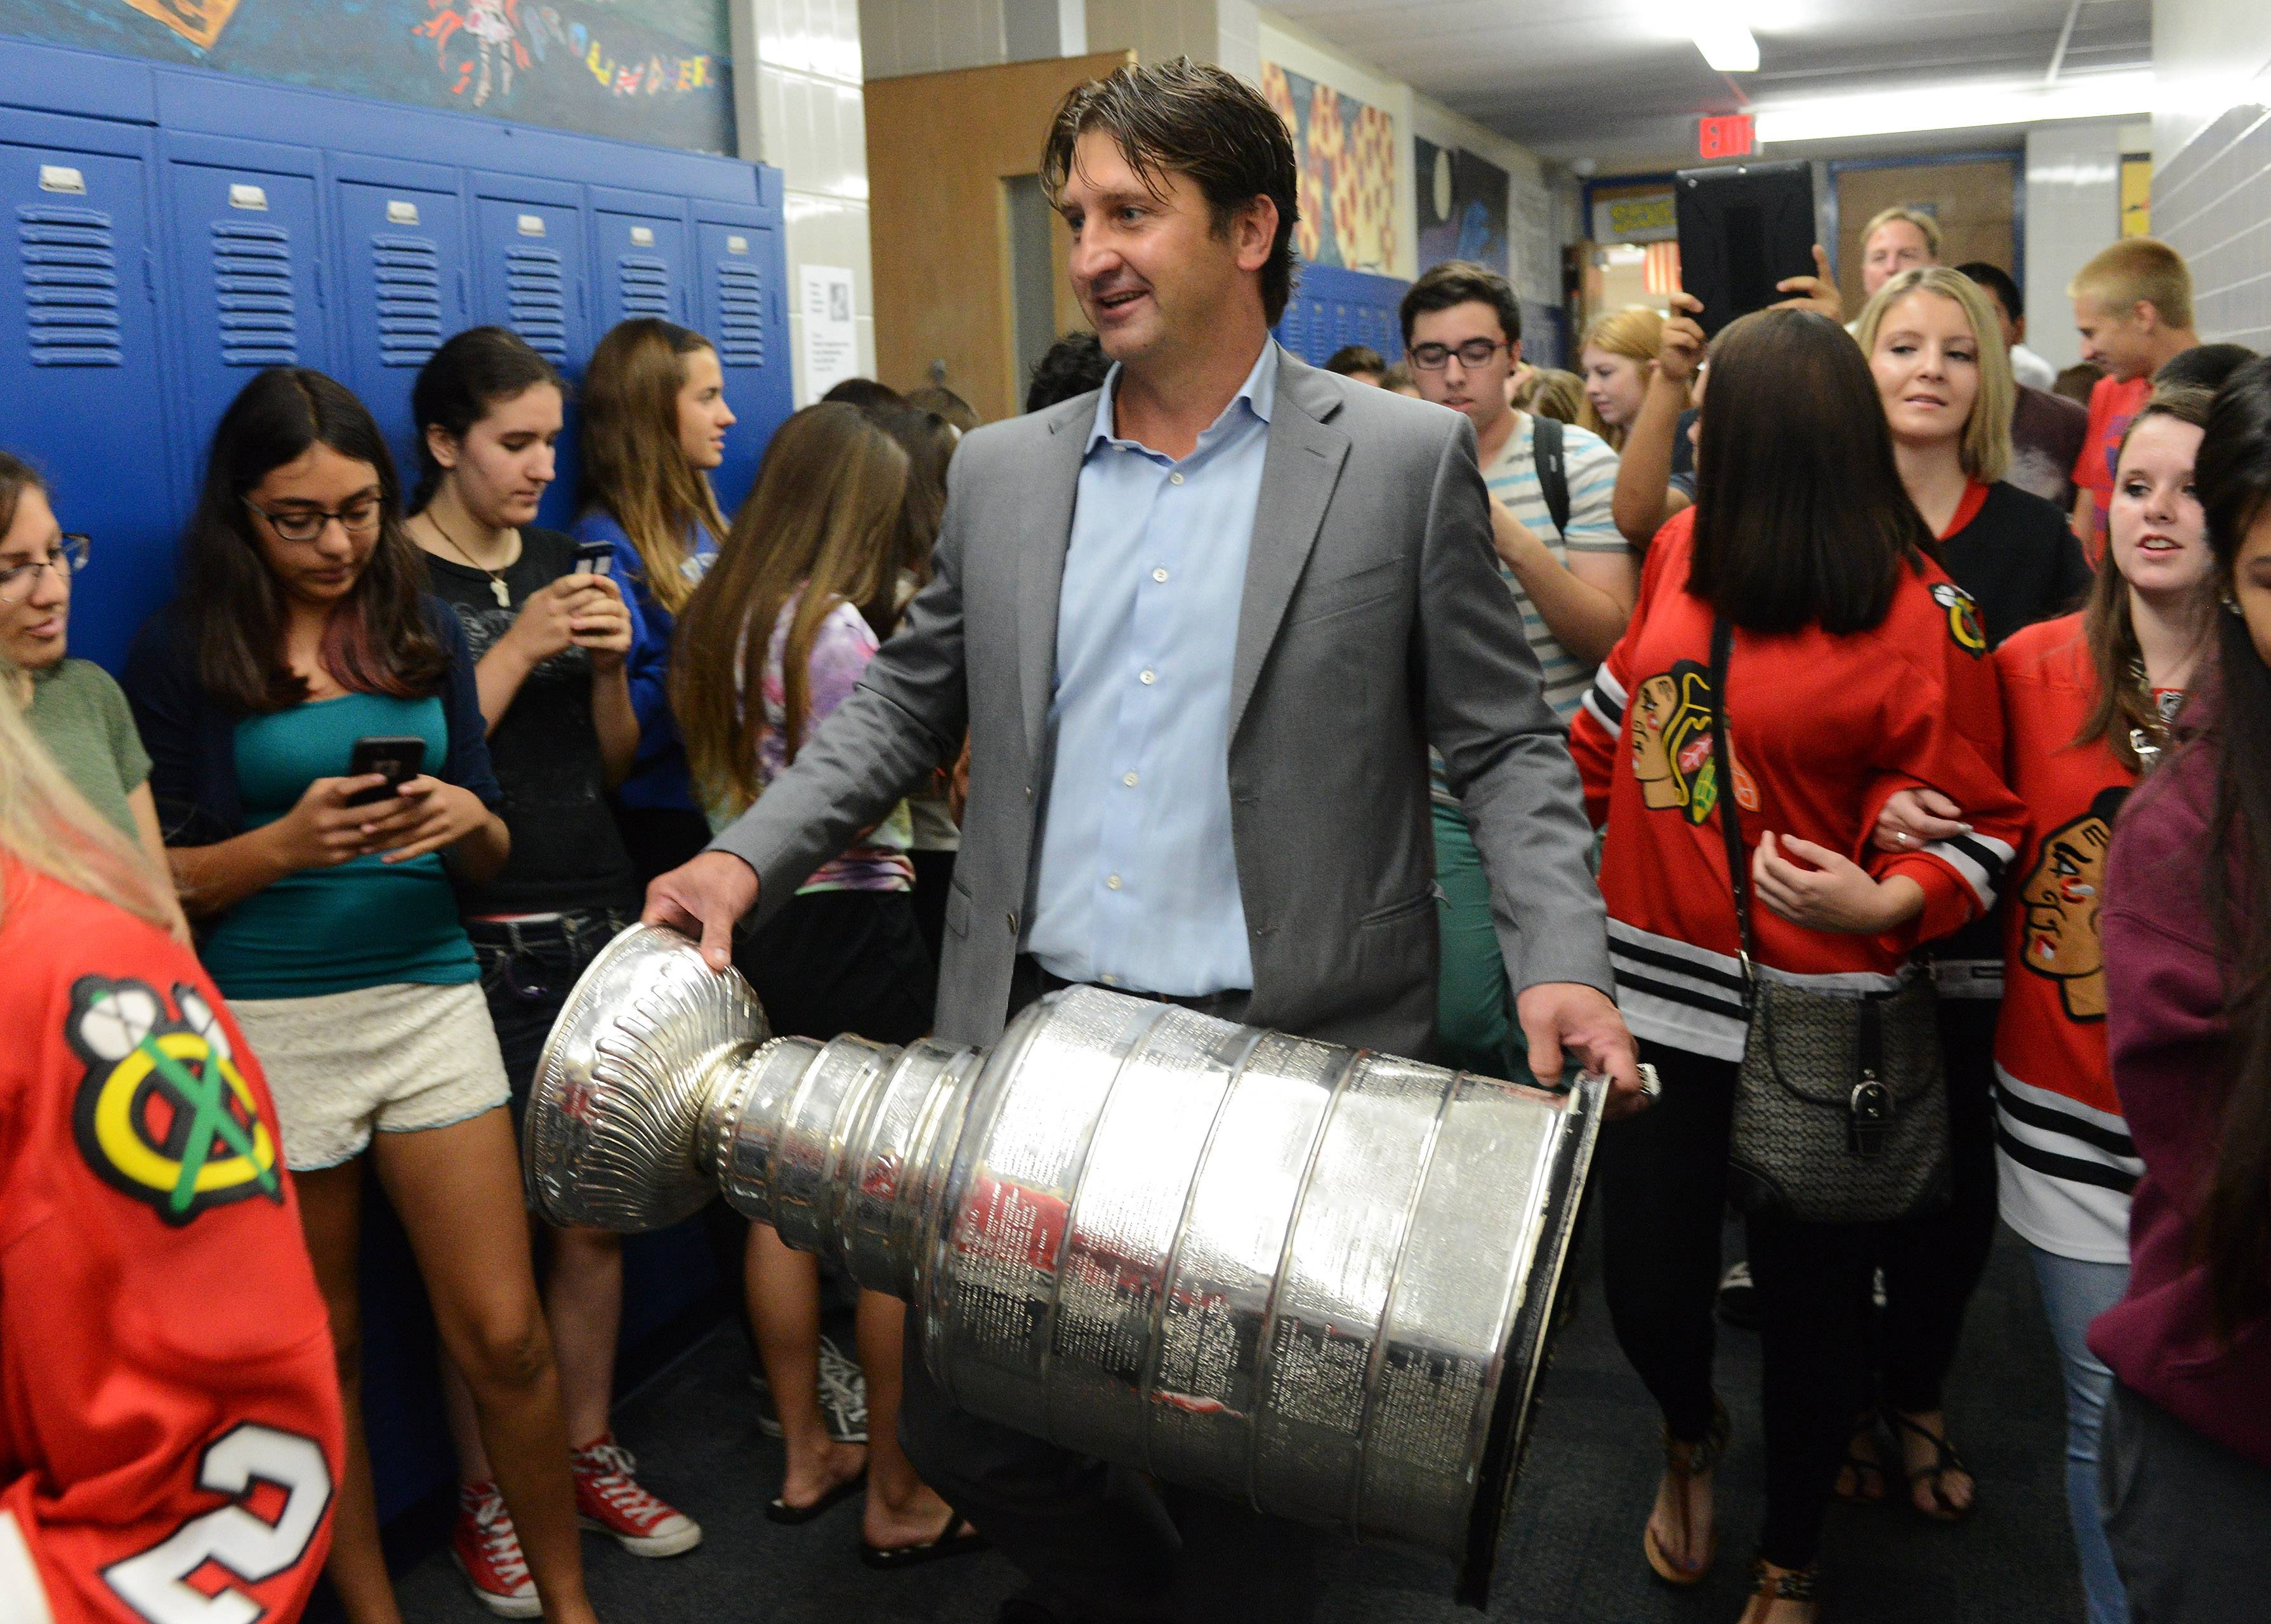 Blackhawks doctor, Wheeling alum brings Stanley Cup to school